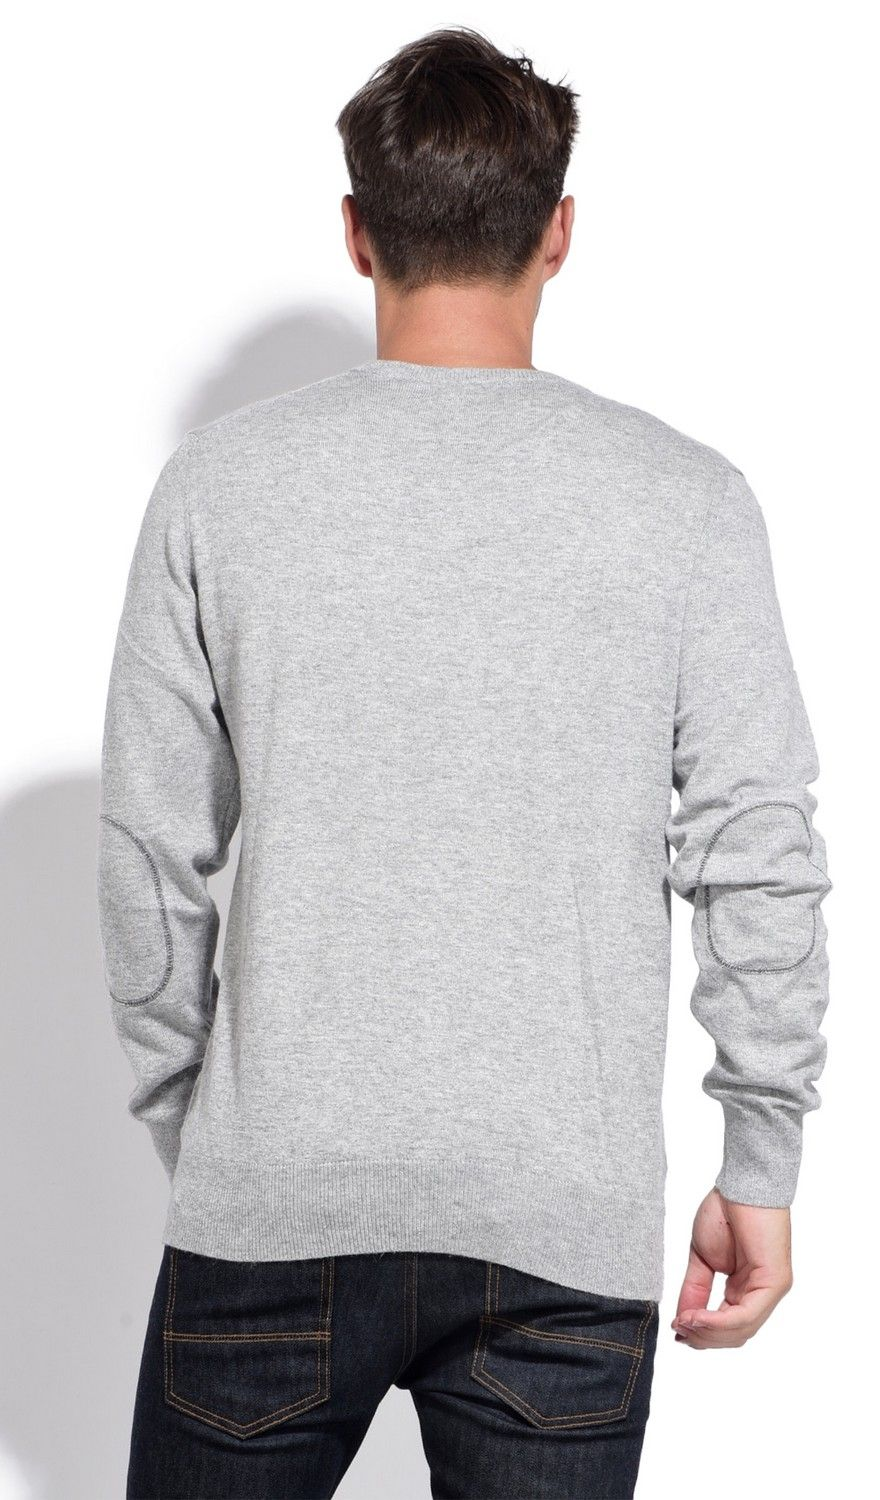 William De Faye V-neck Sweater with Elbow Patches in Grey